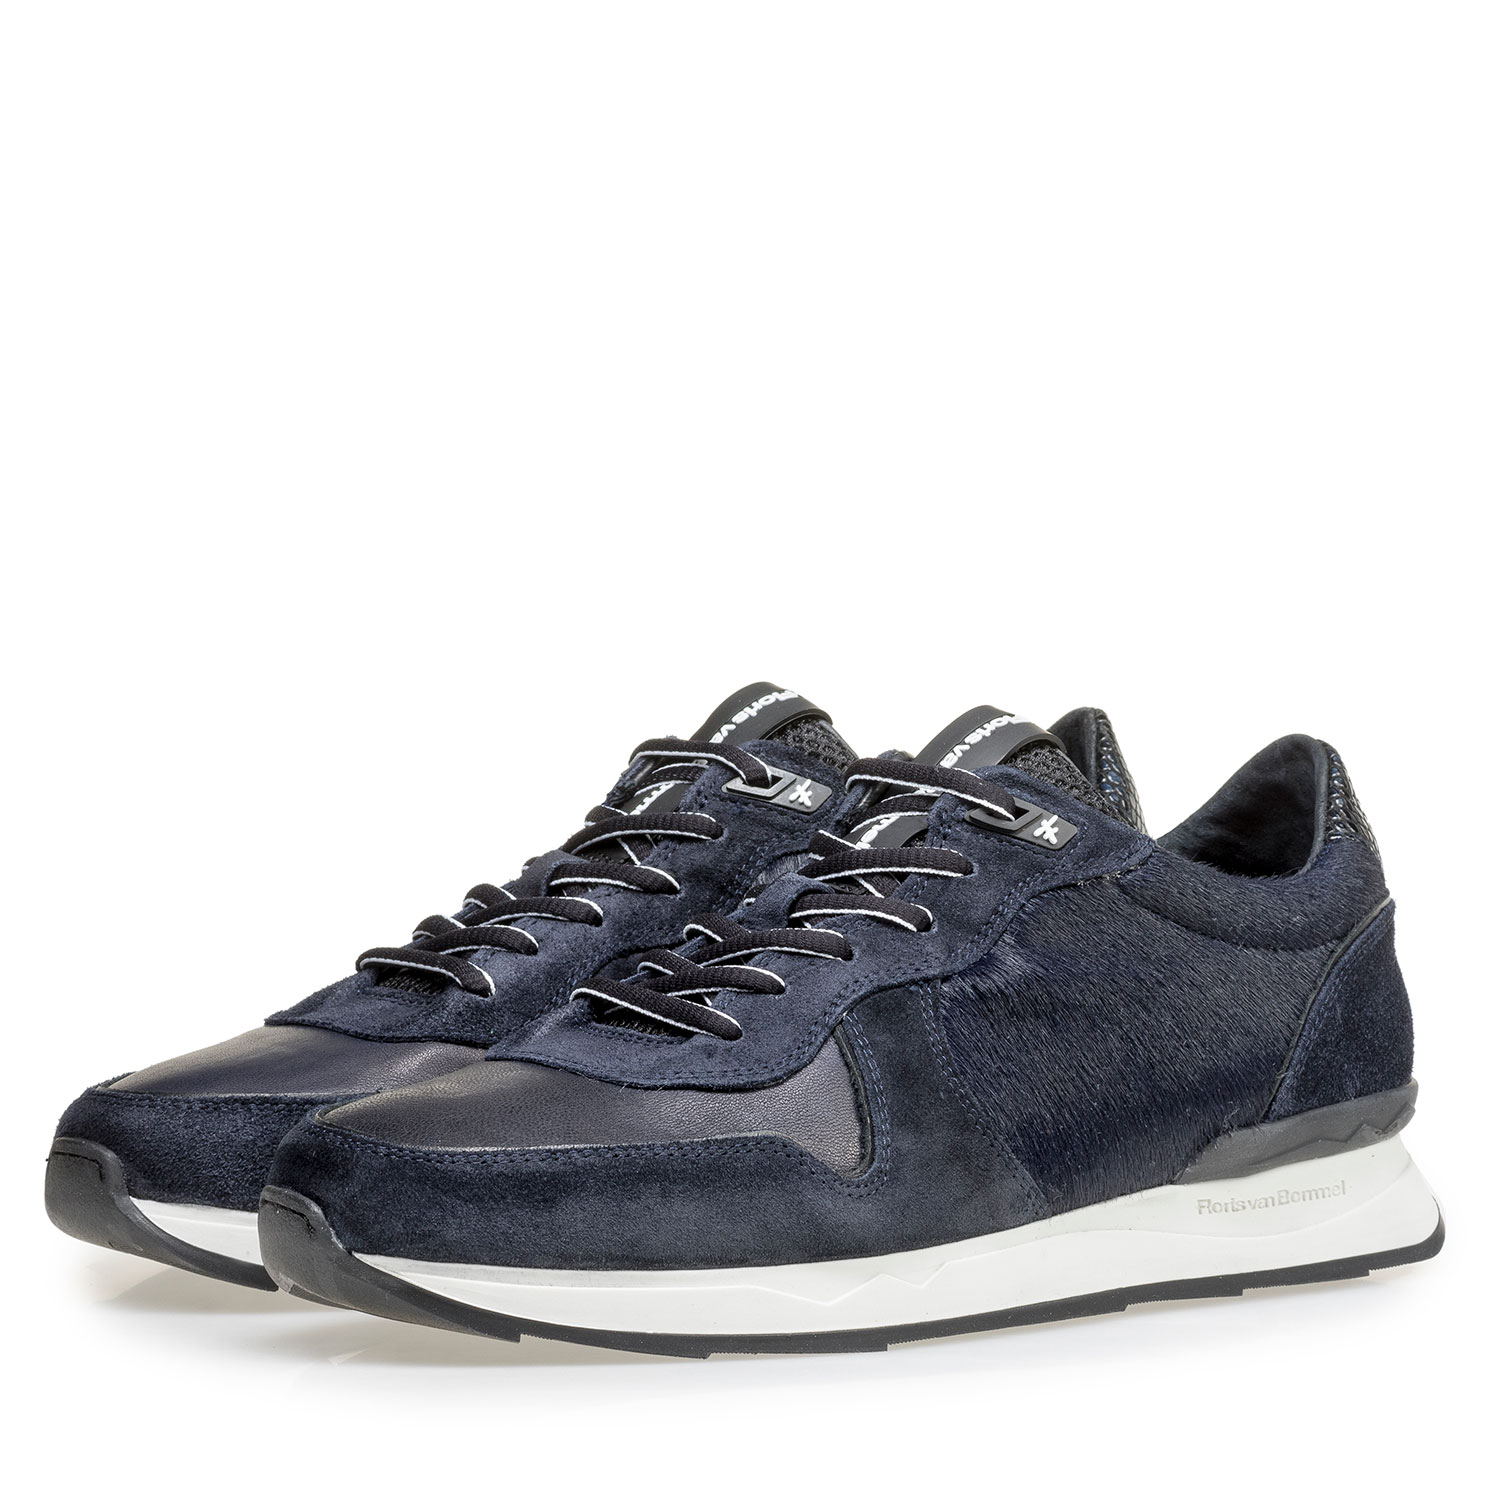 16291/07 - Blue suede leather sneaker